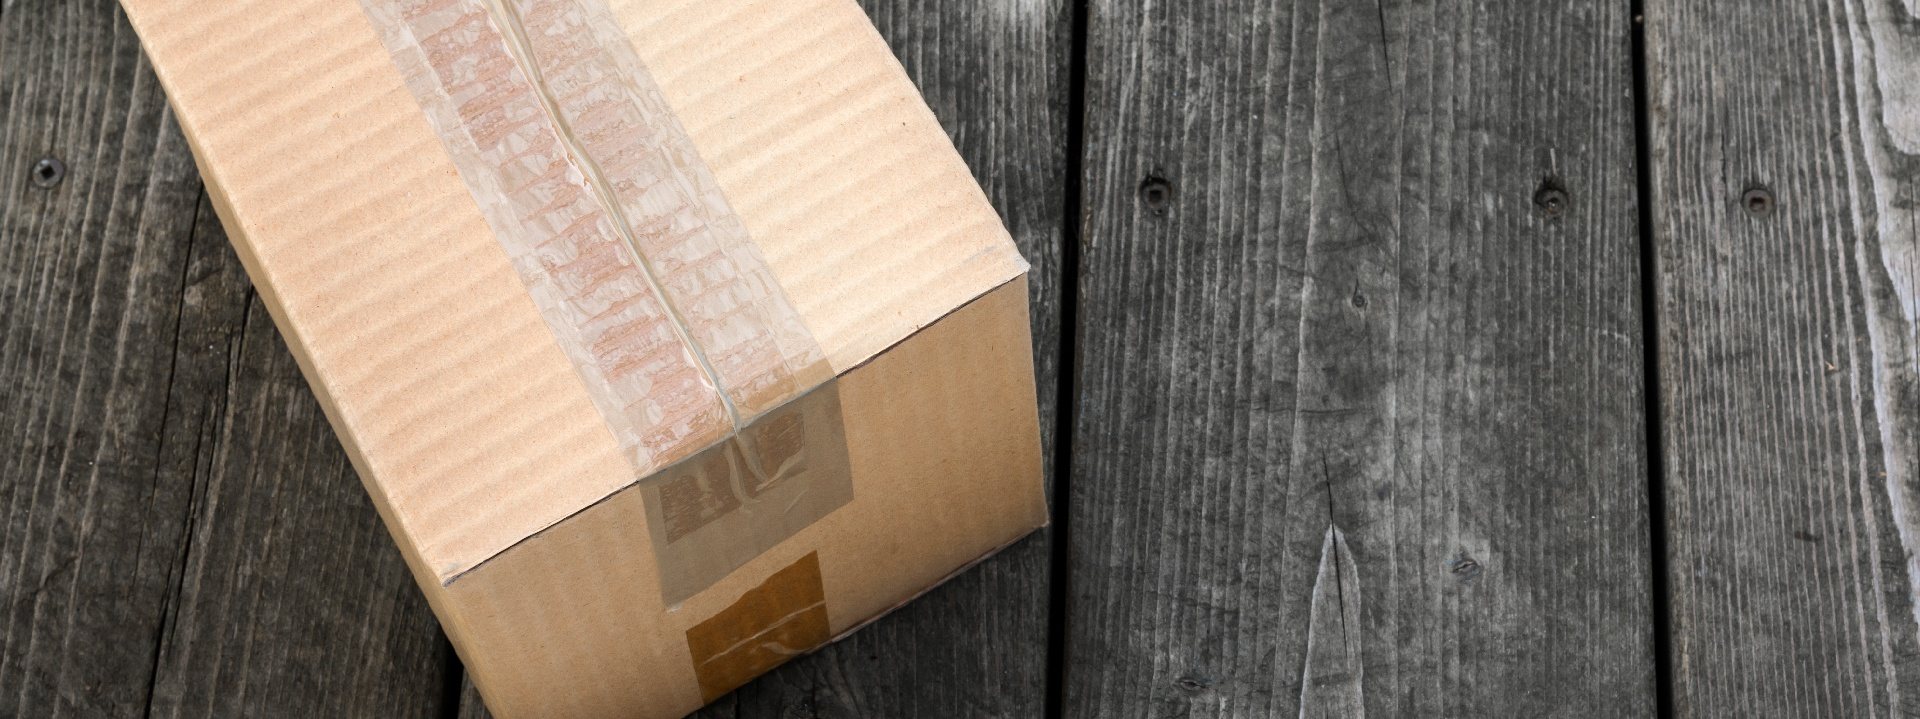 Long-Form_-From Idea to Doorstep- Selling